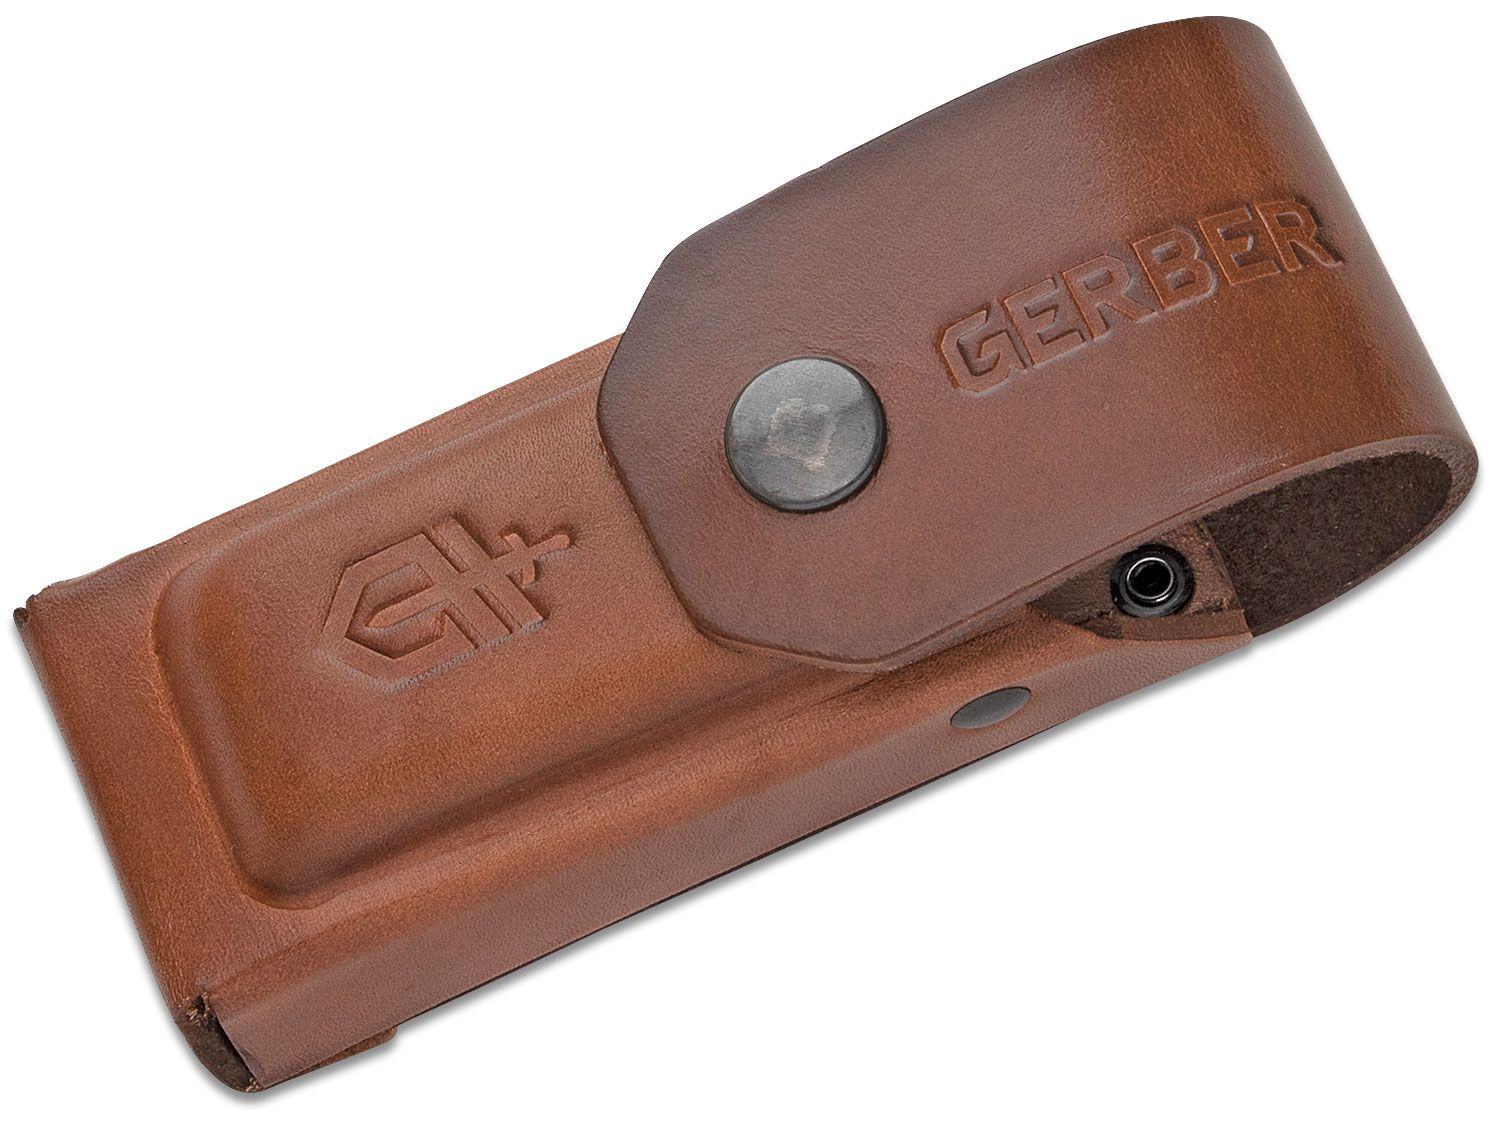 Gerber Center-Drive and MP600 Multi-Tool Brown Leather Sheath